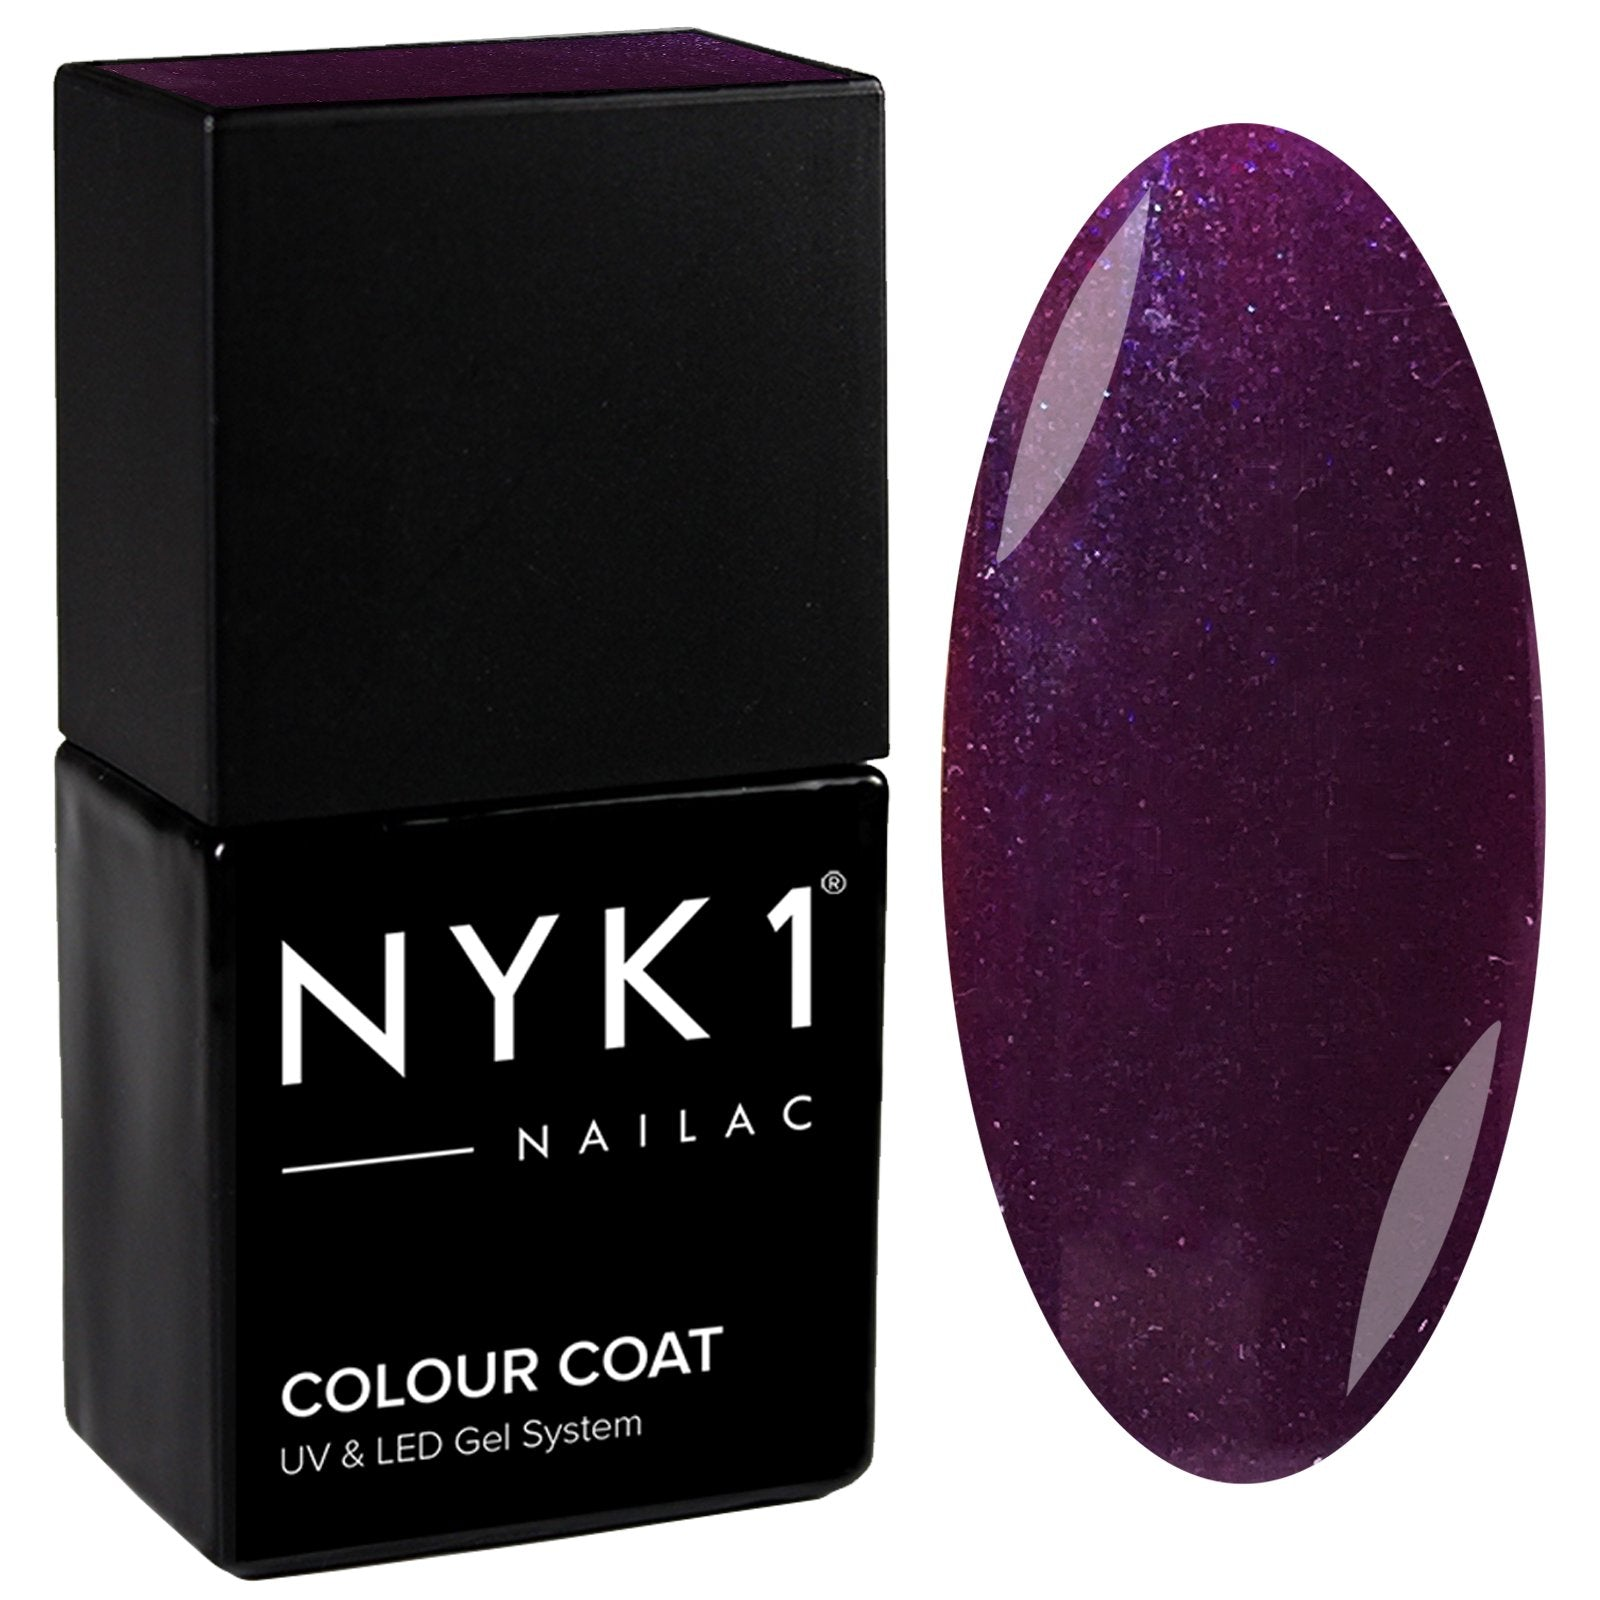 NYK1 Nailac Purple Rock Gel Nail Polish